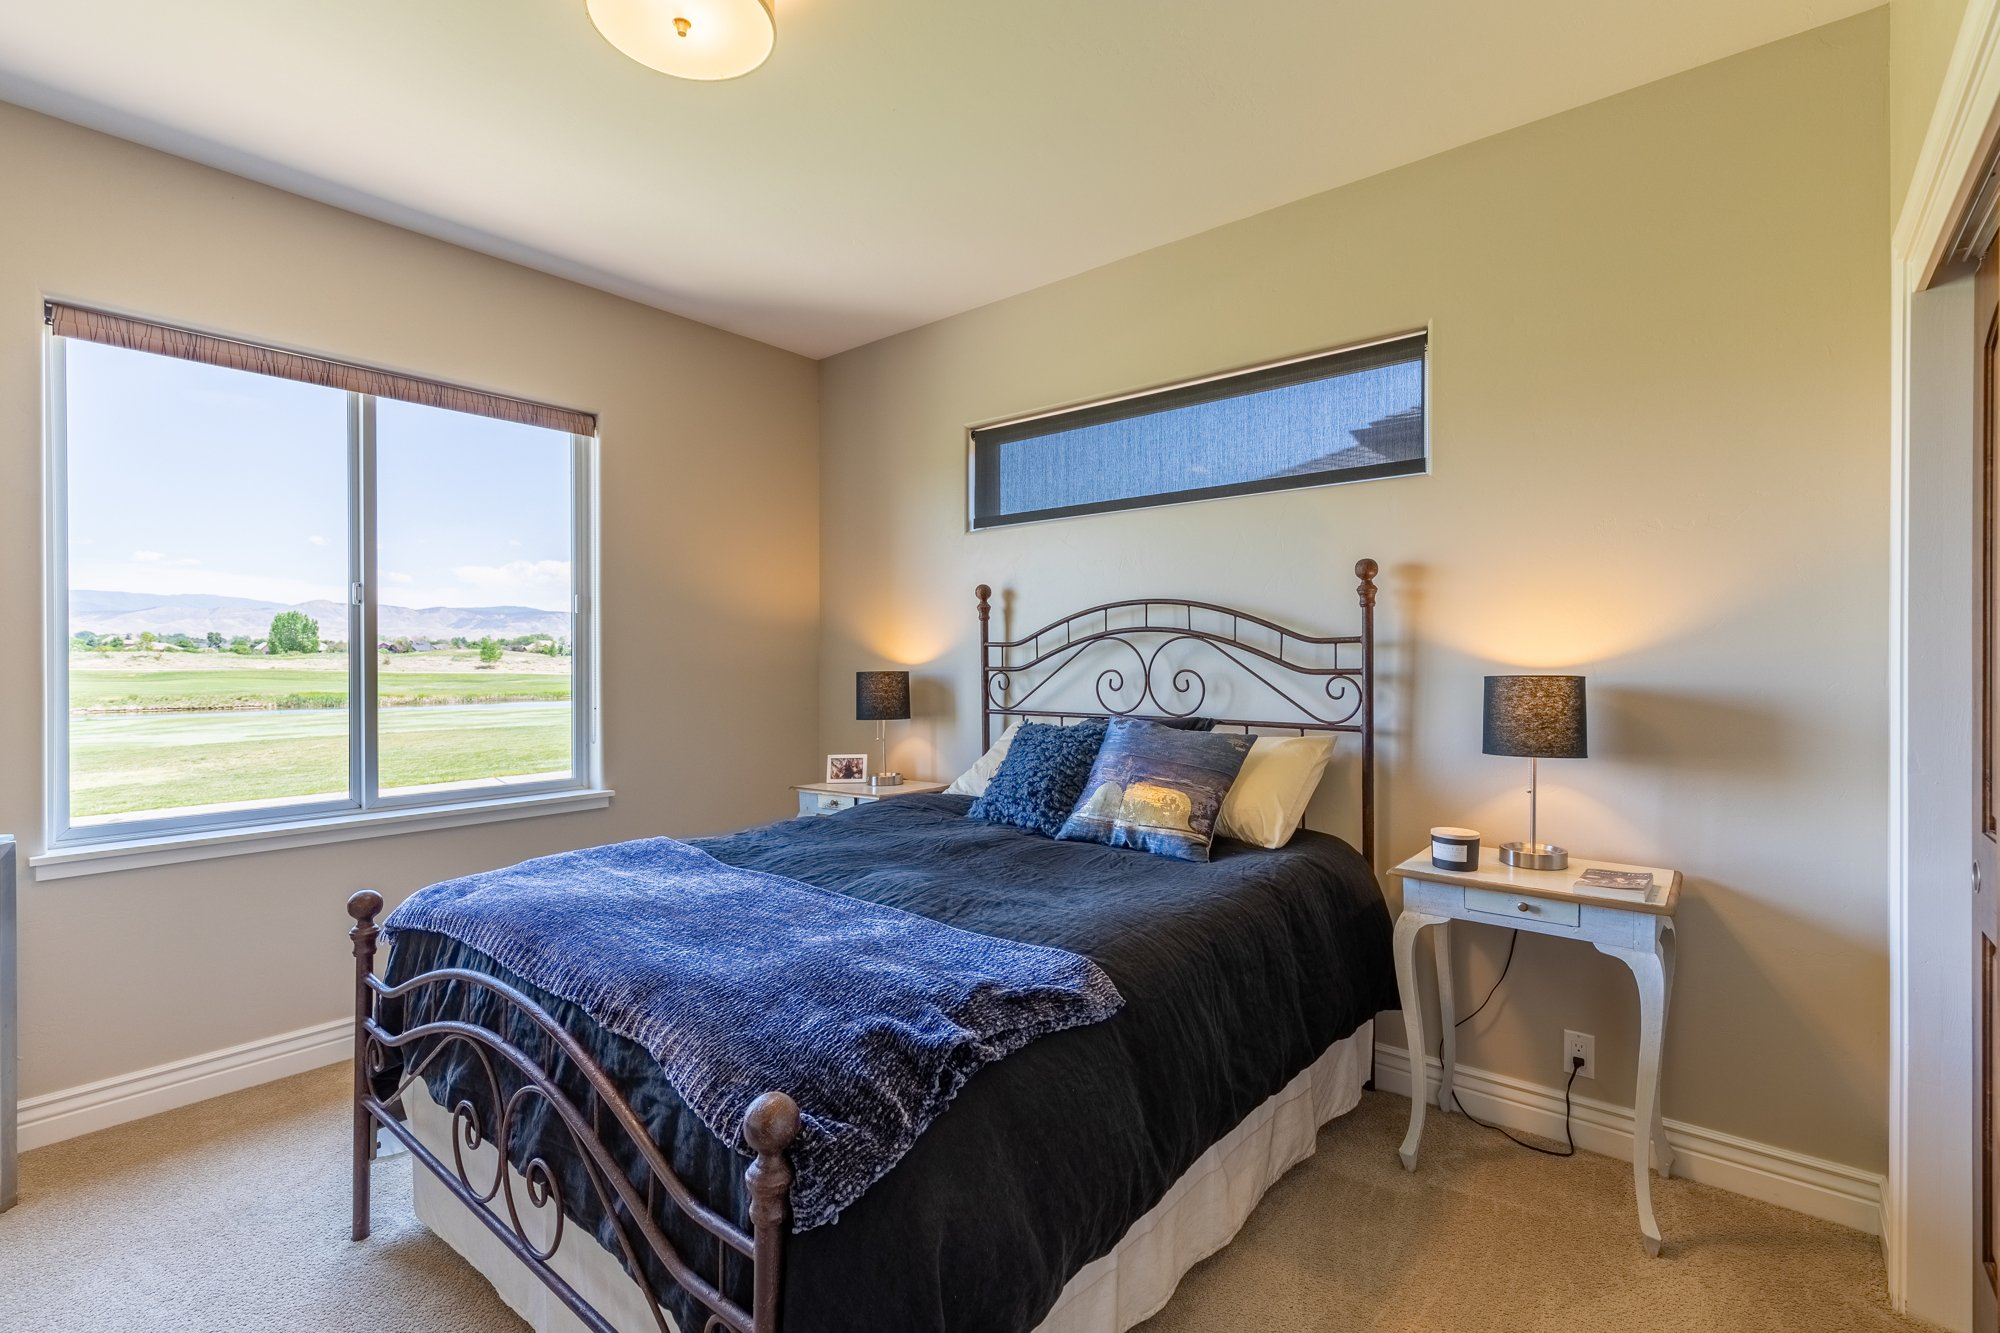 Bedroom with High Window - 2927 Sleeping Bear Rd Montrose, CO 81401 - Atha Team Real Estate